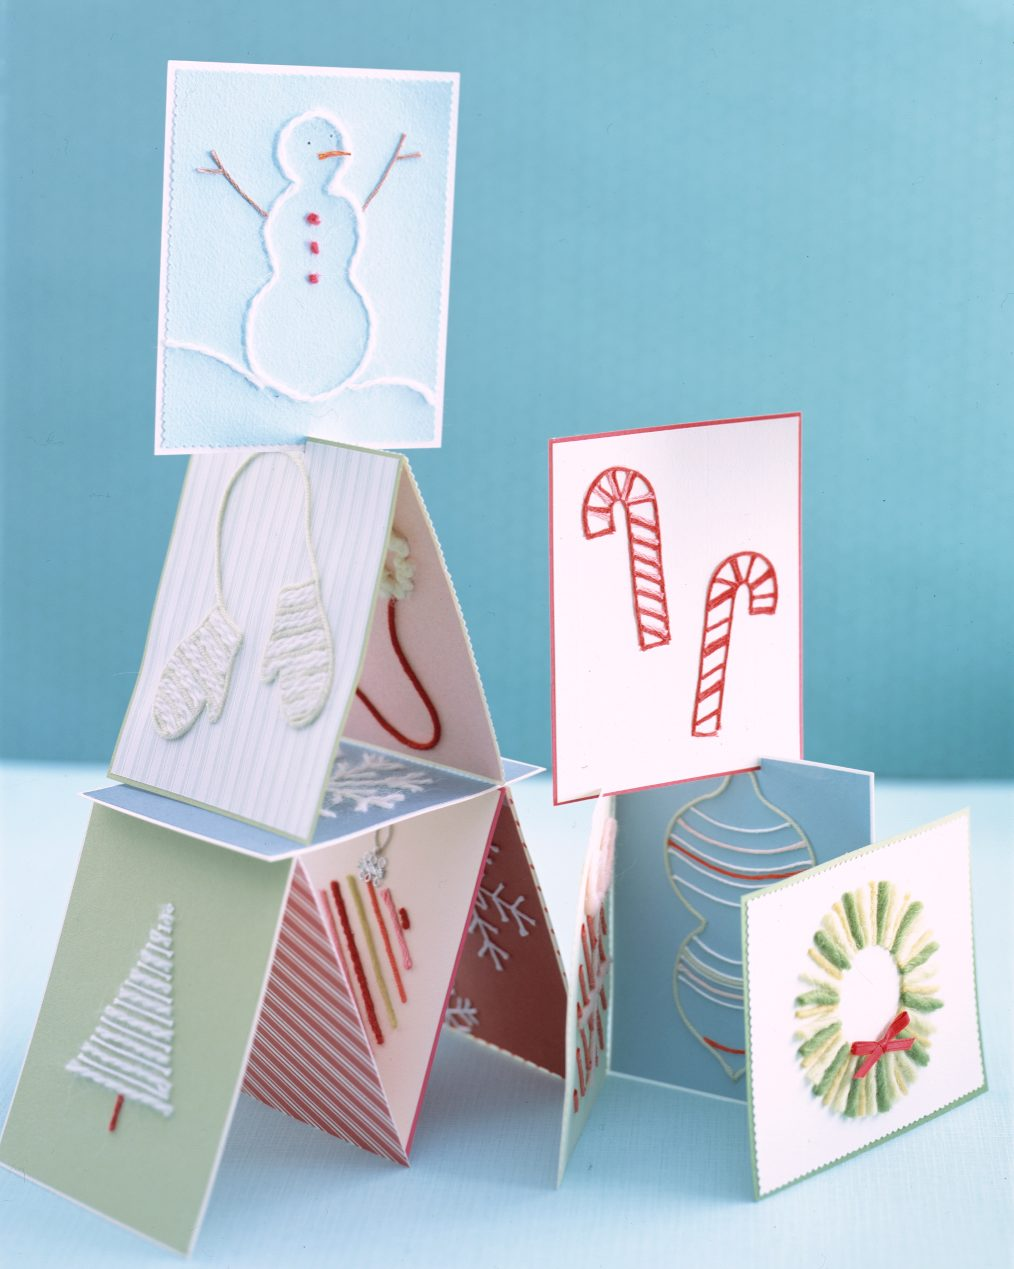 holiday cards made of yarn